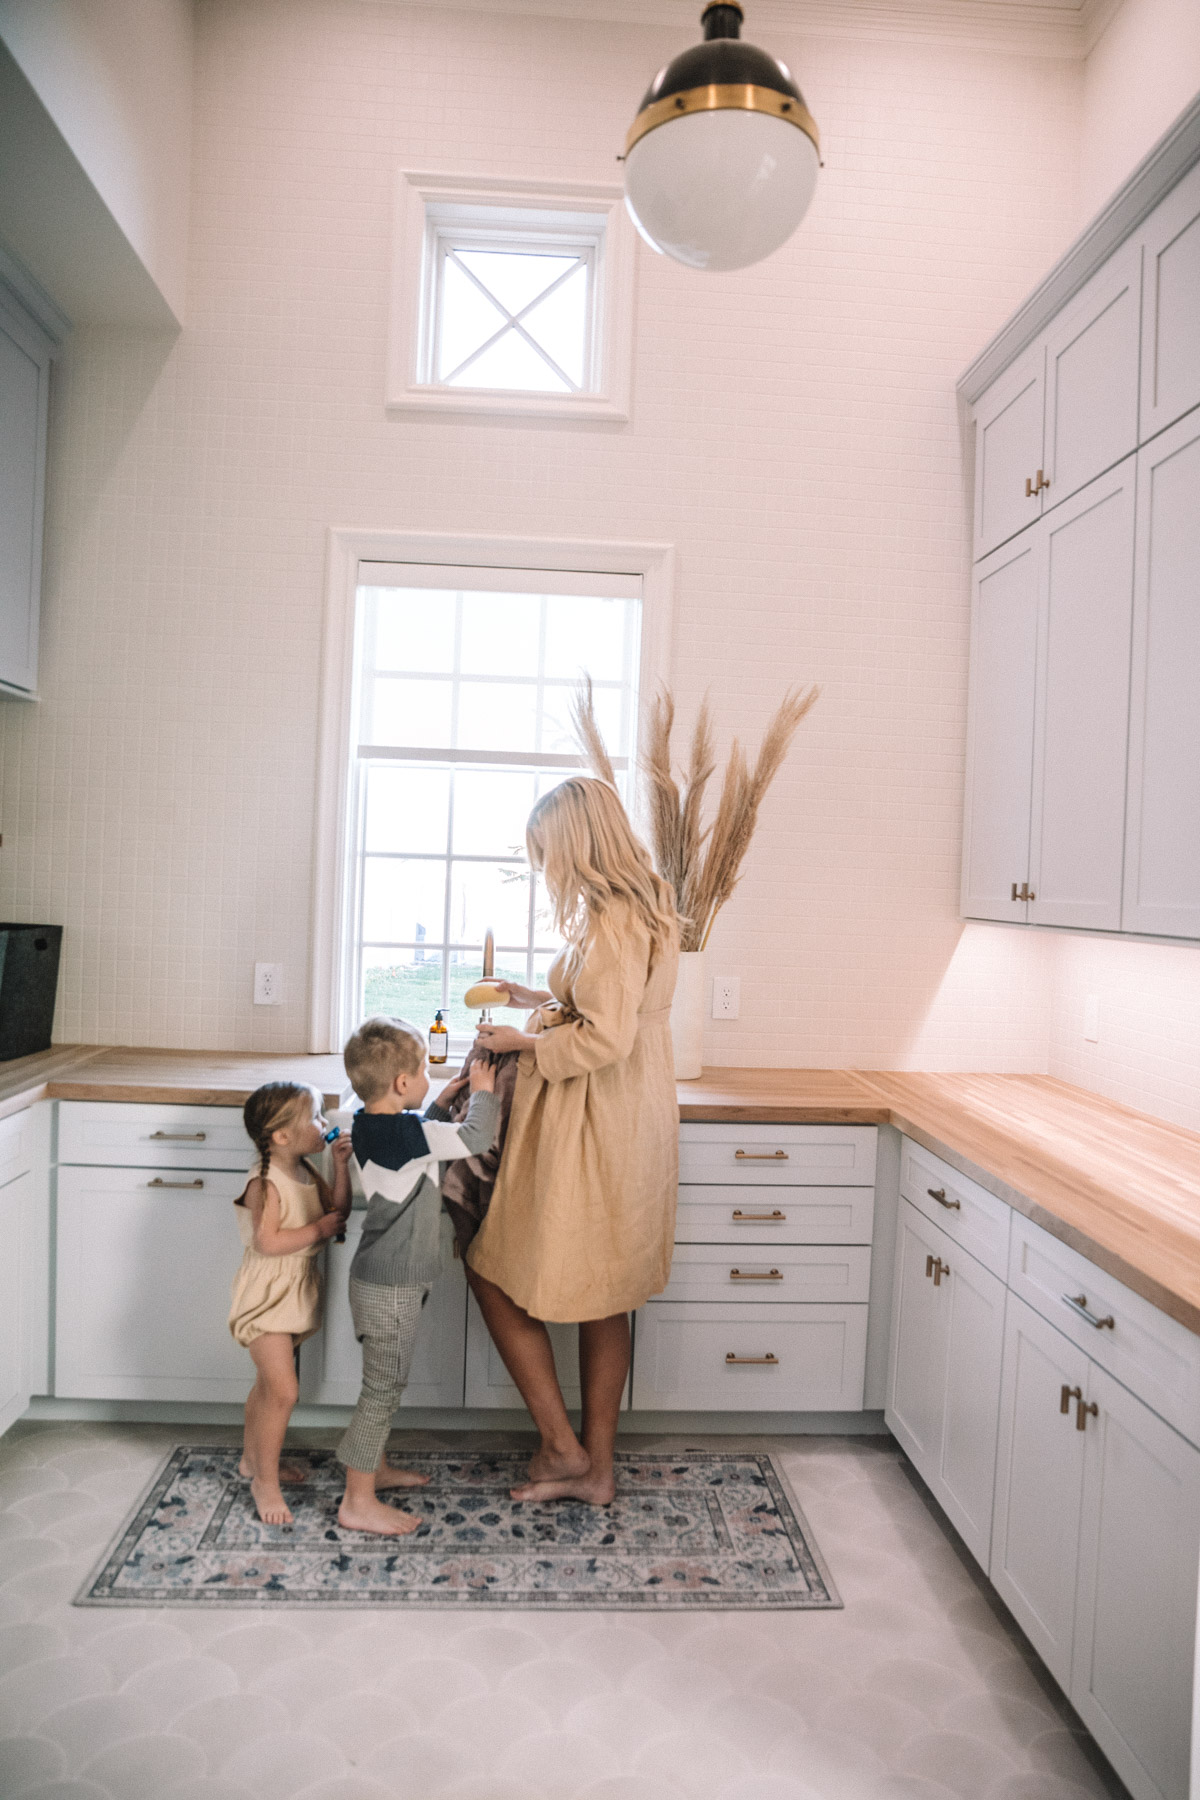 Amber Fillerup Clark with Atticus and Rosie in their laundry room in their brand new home.